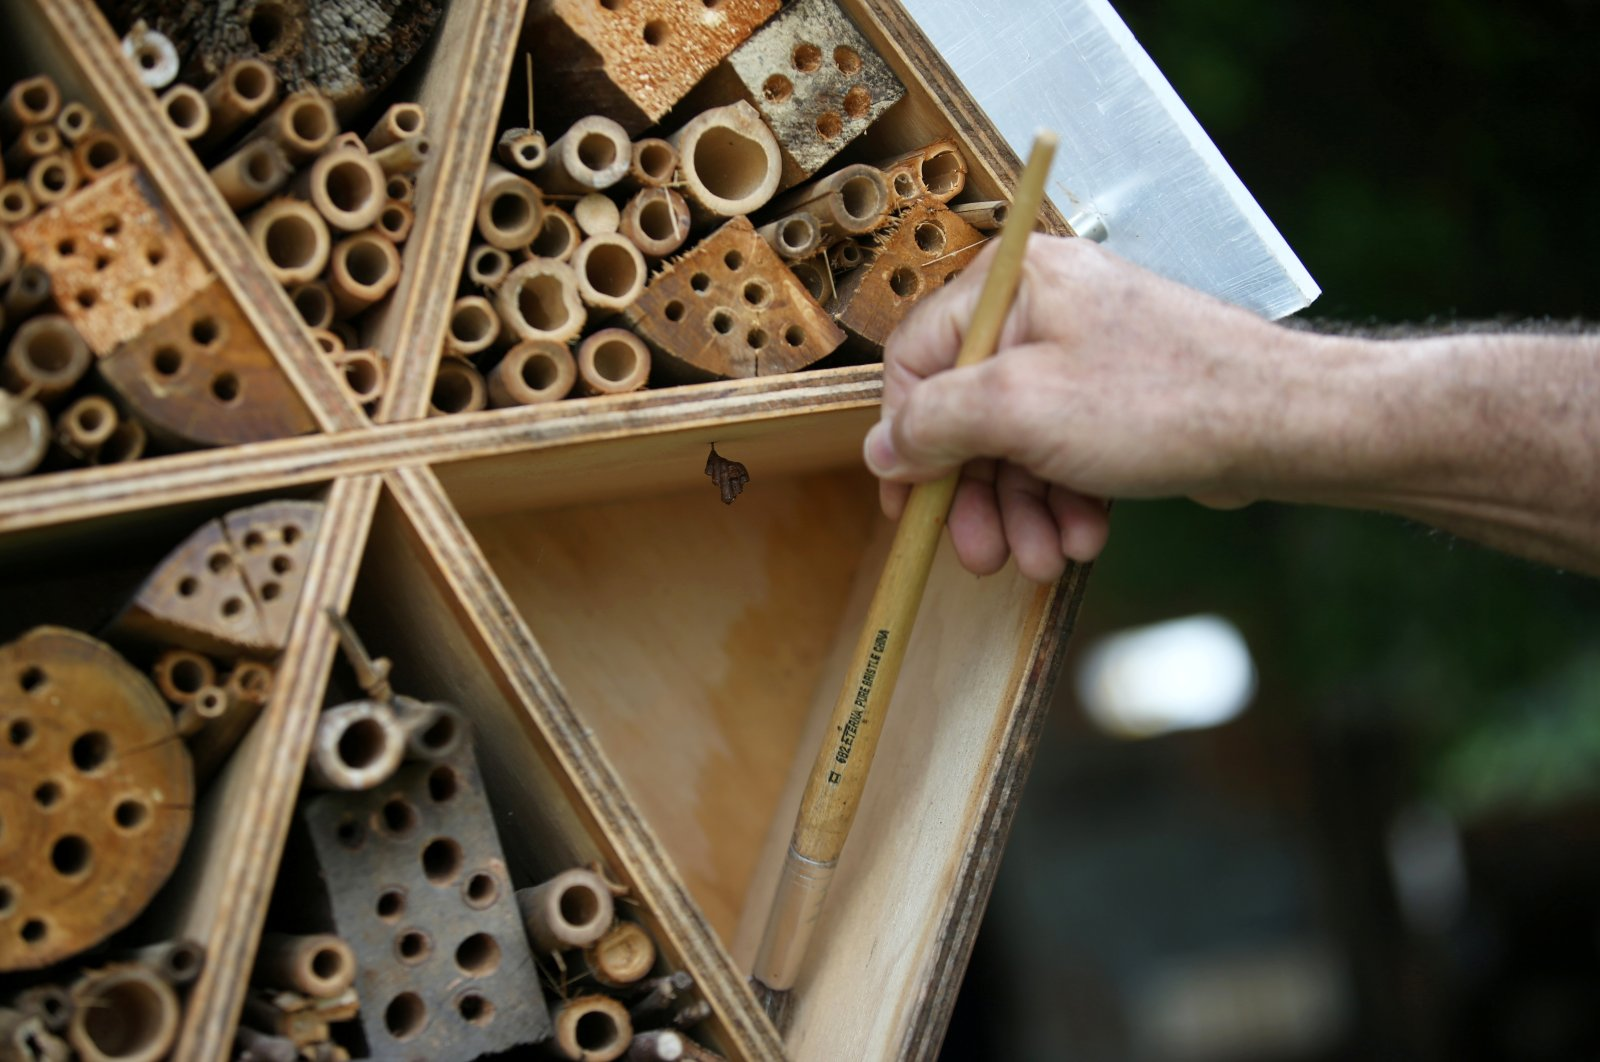 Hector Ivan Valencia, an assistant for the local authority's risk management unit, cleans the structure of a wooden hotel for solitary bees made by the Metropolitan Area of the Aburra Valley (AMVA) in Barbosa, Colombia, April 21, 2021. (Reuters Photo)